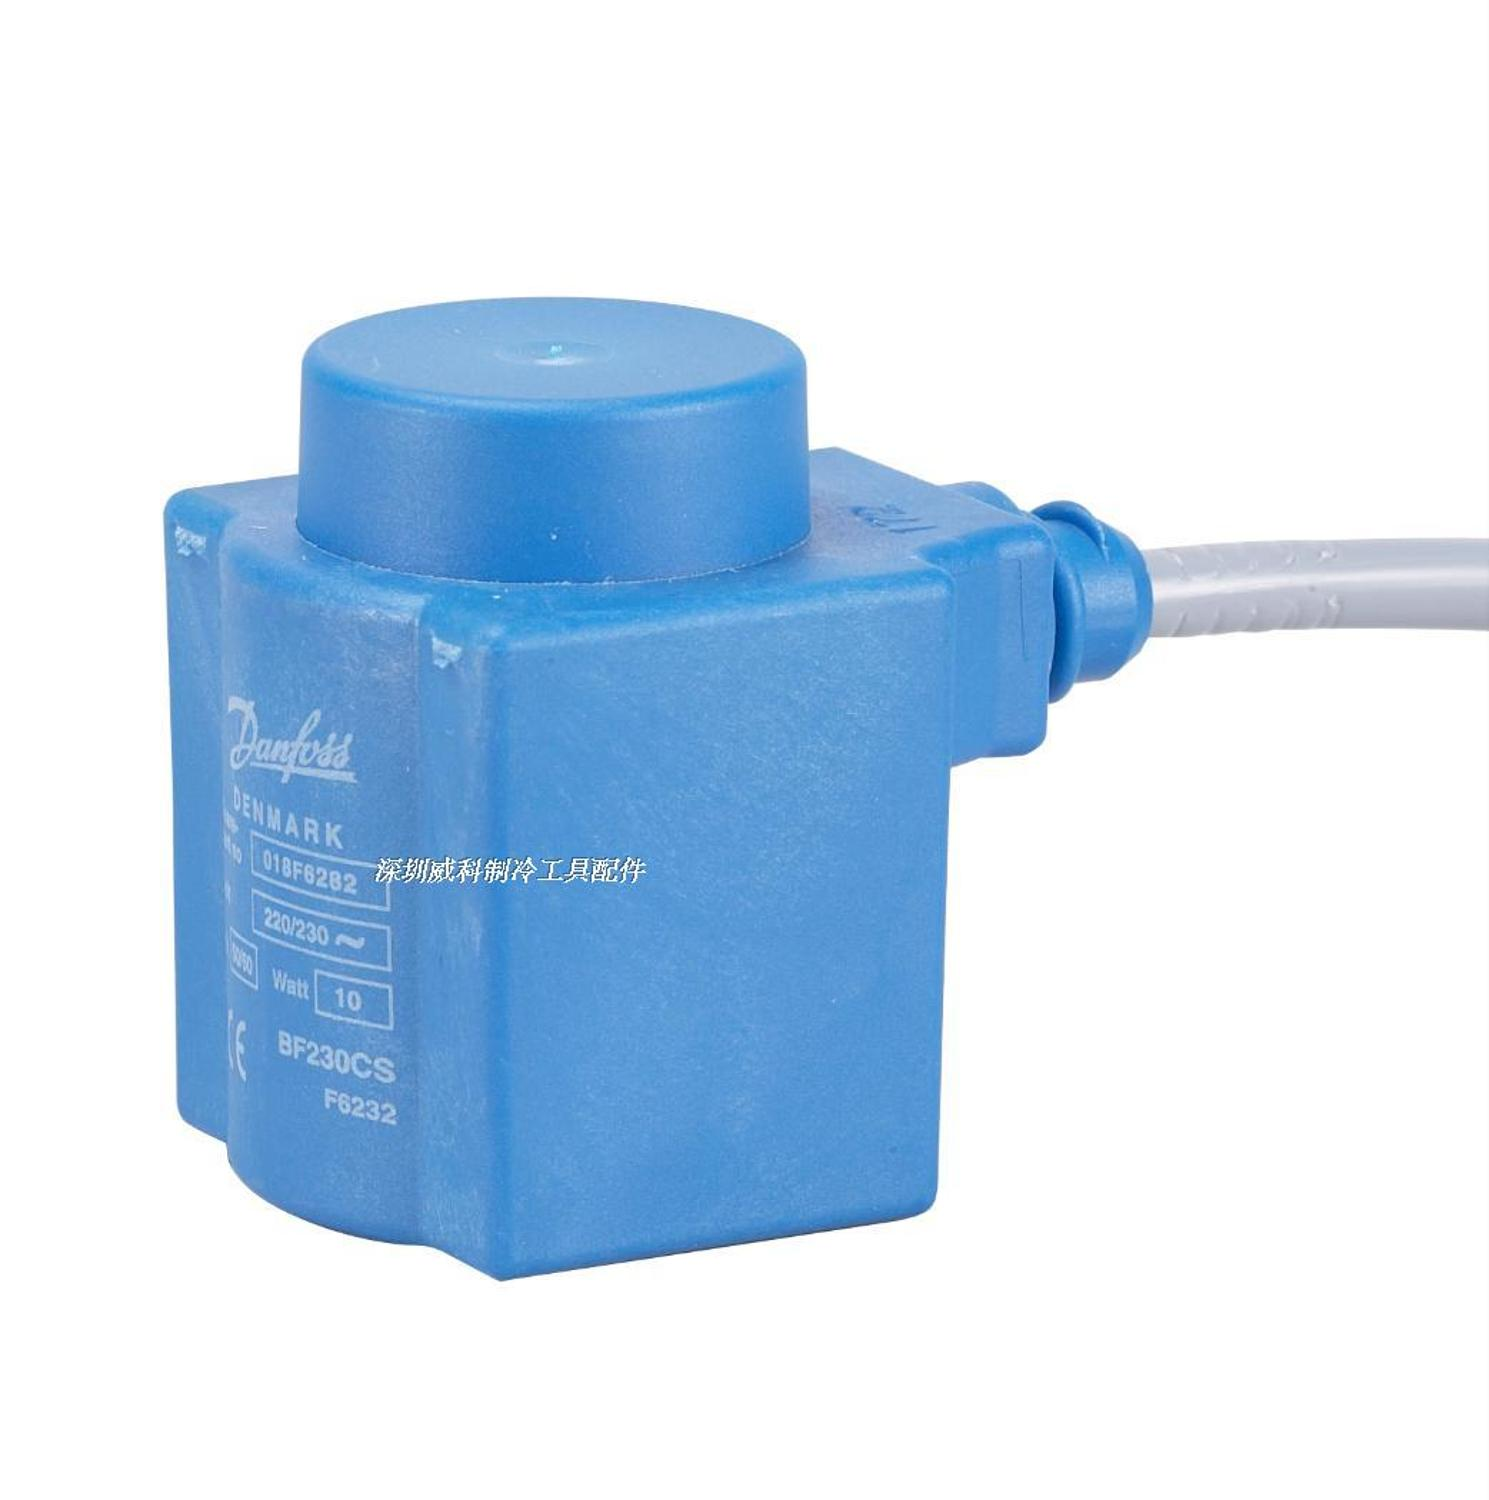 Compare Prices On Danfoss Solenoid Coil- Online Shopping